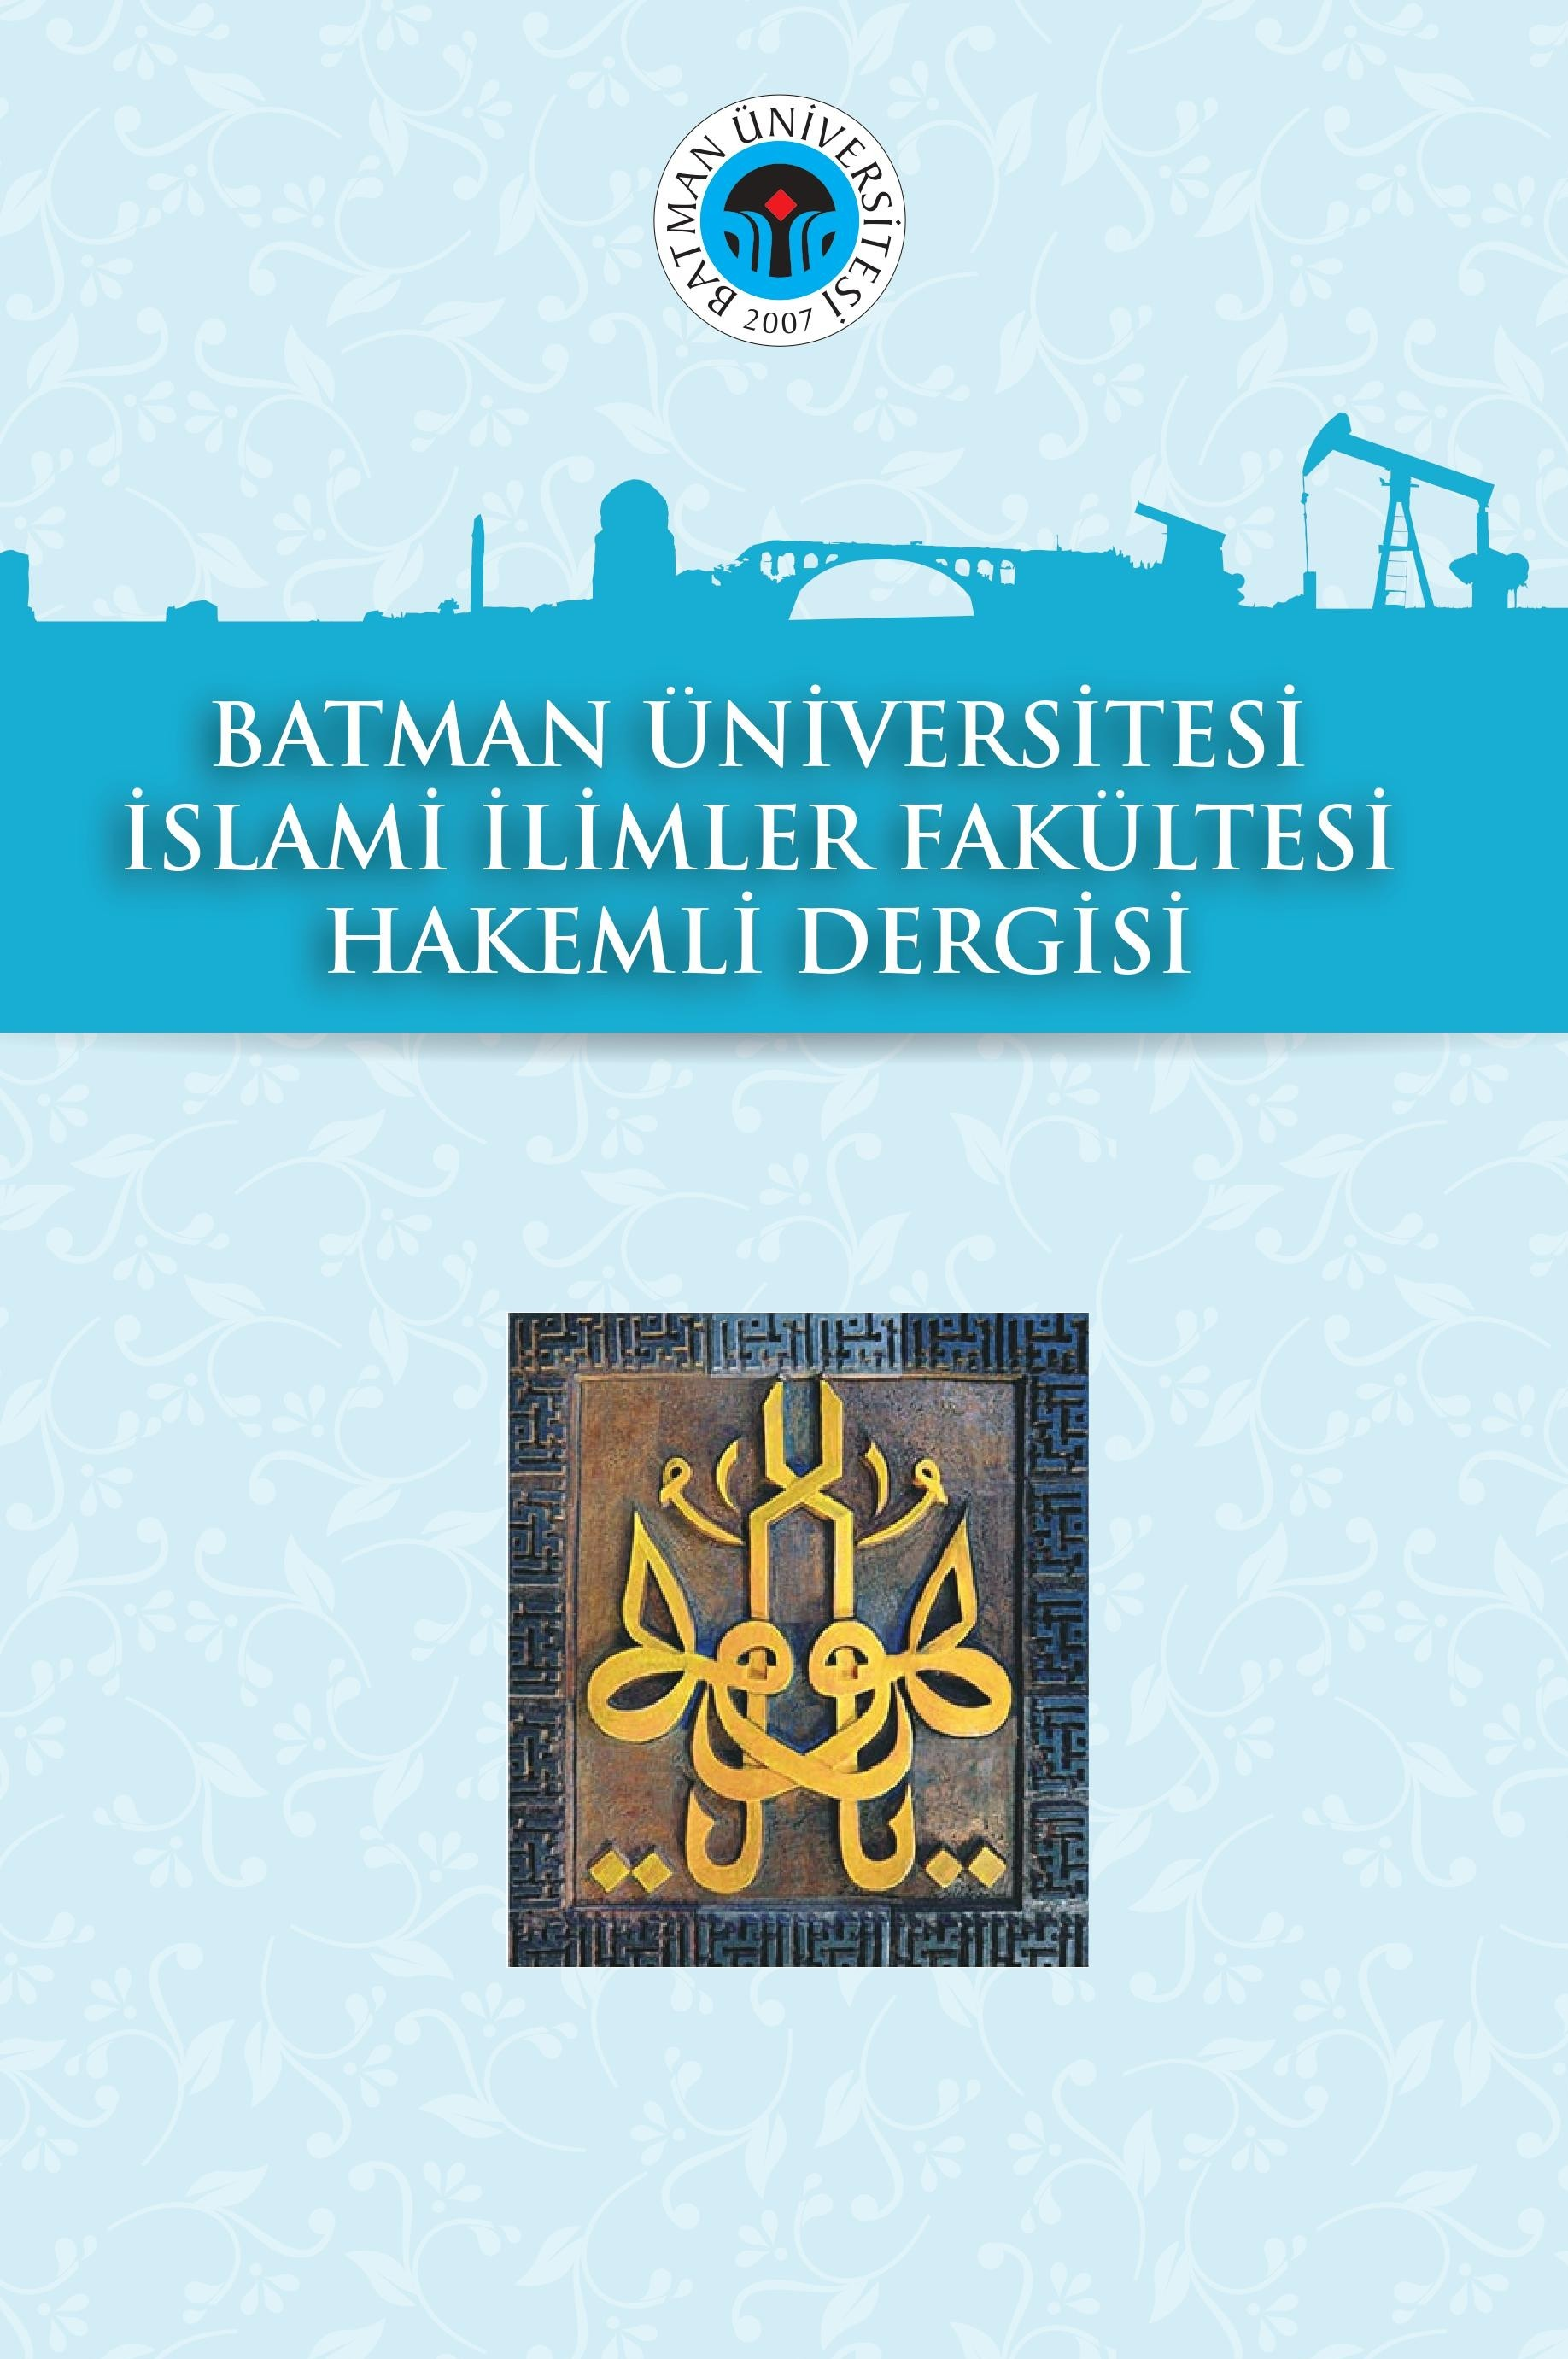 Journal of The İslamic Sciens Faculty of Batman University